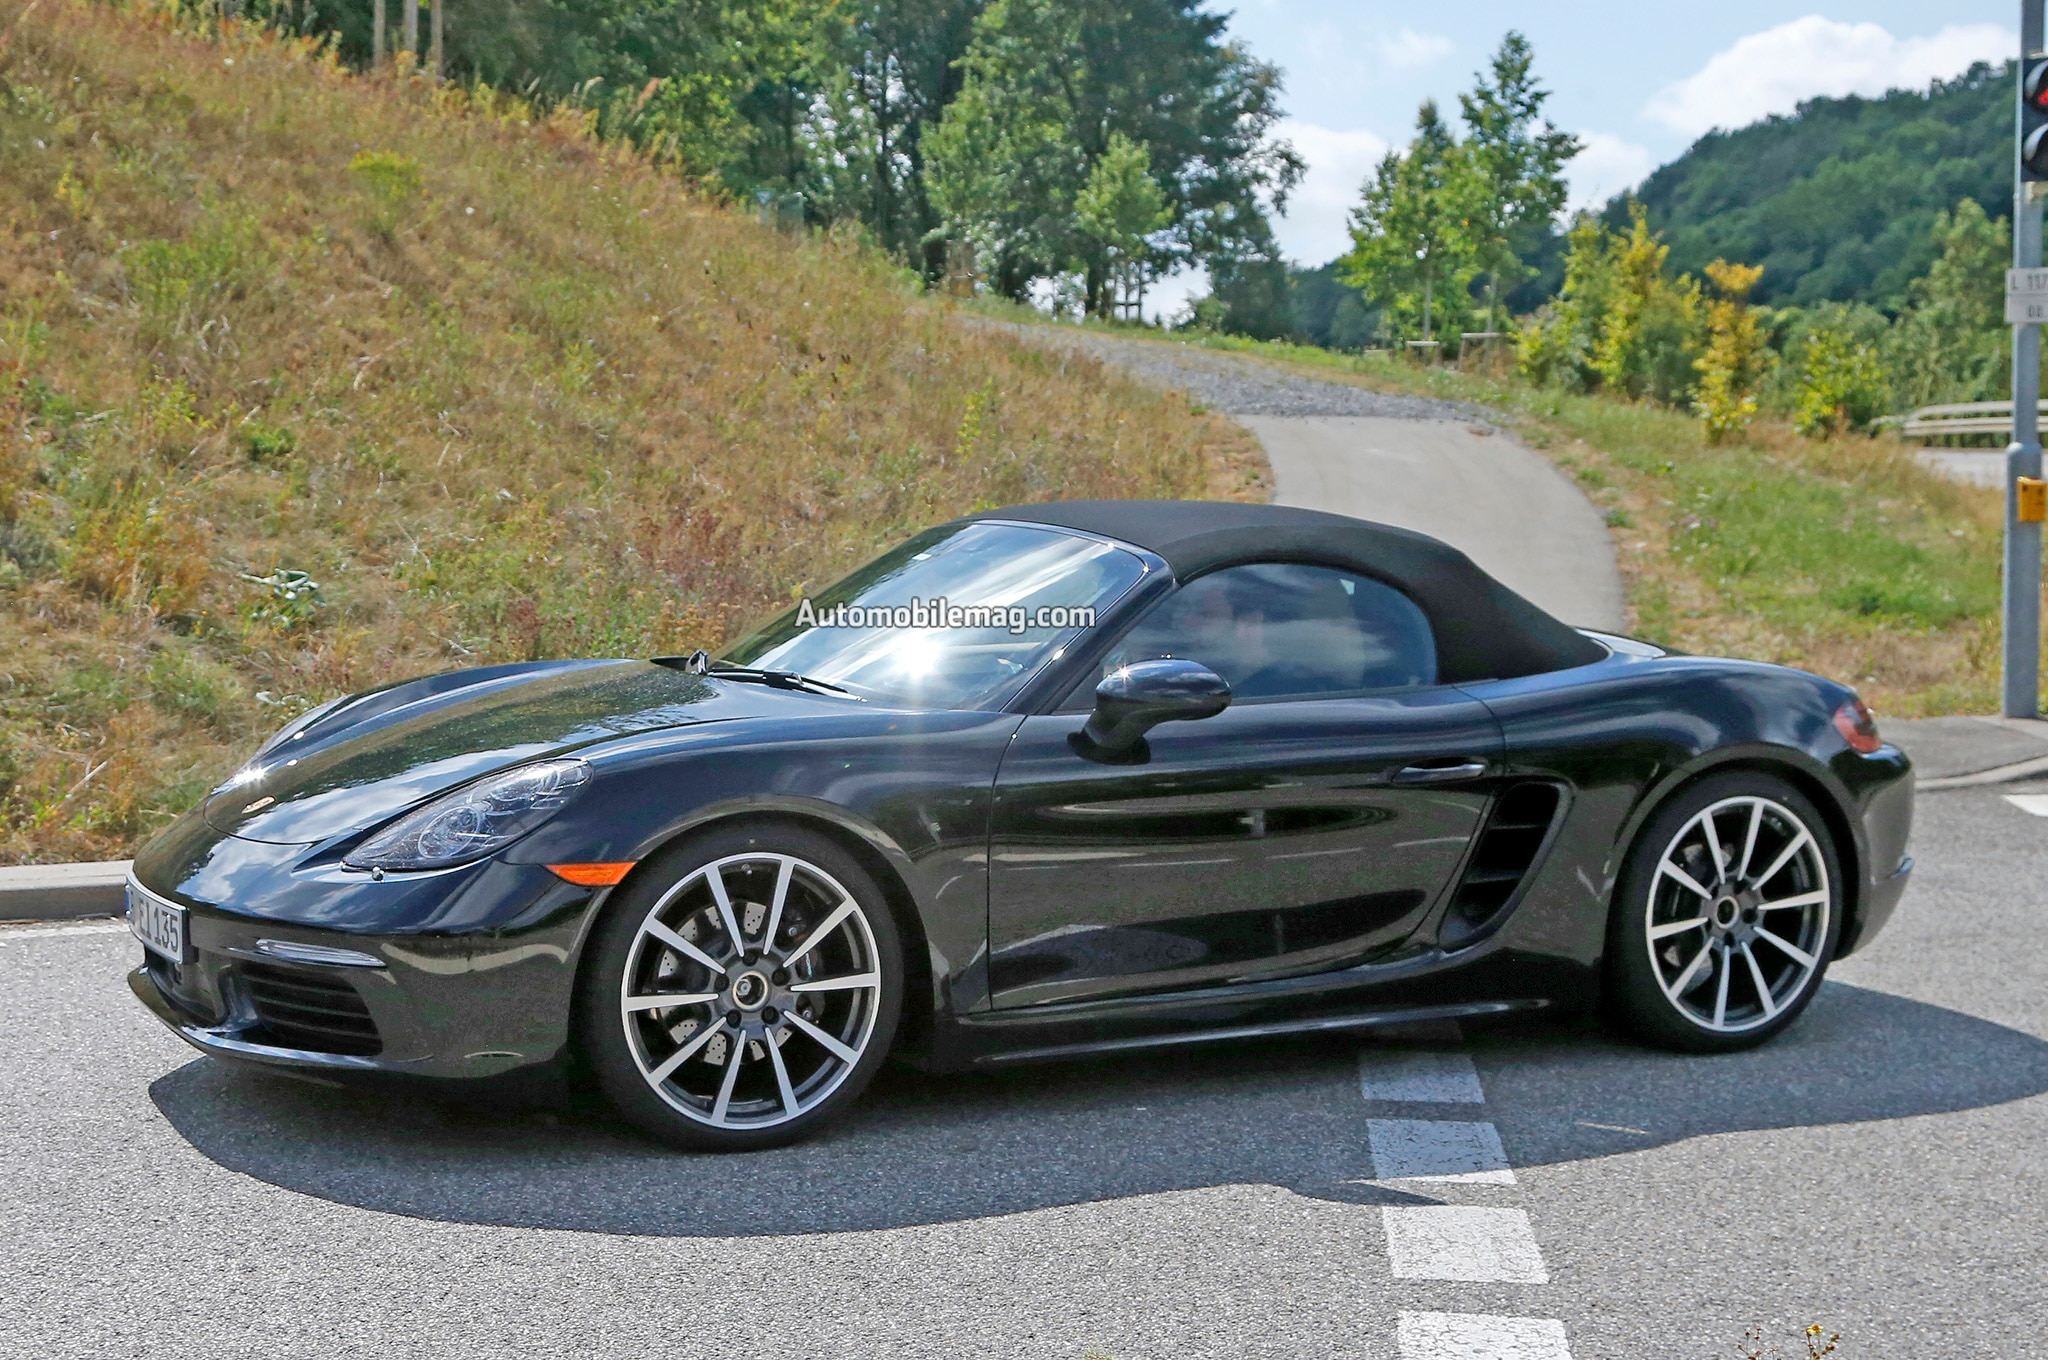 2016 porsche boxster refresh spied with hints to new powertrain. Black Bedroom Furniture Sets. Home Design Ideas